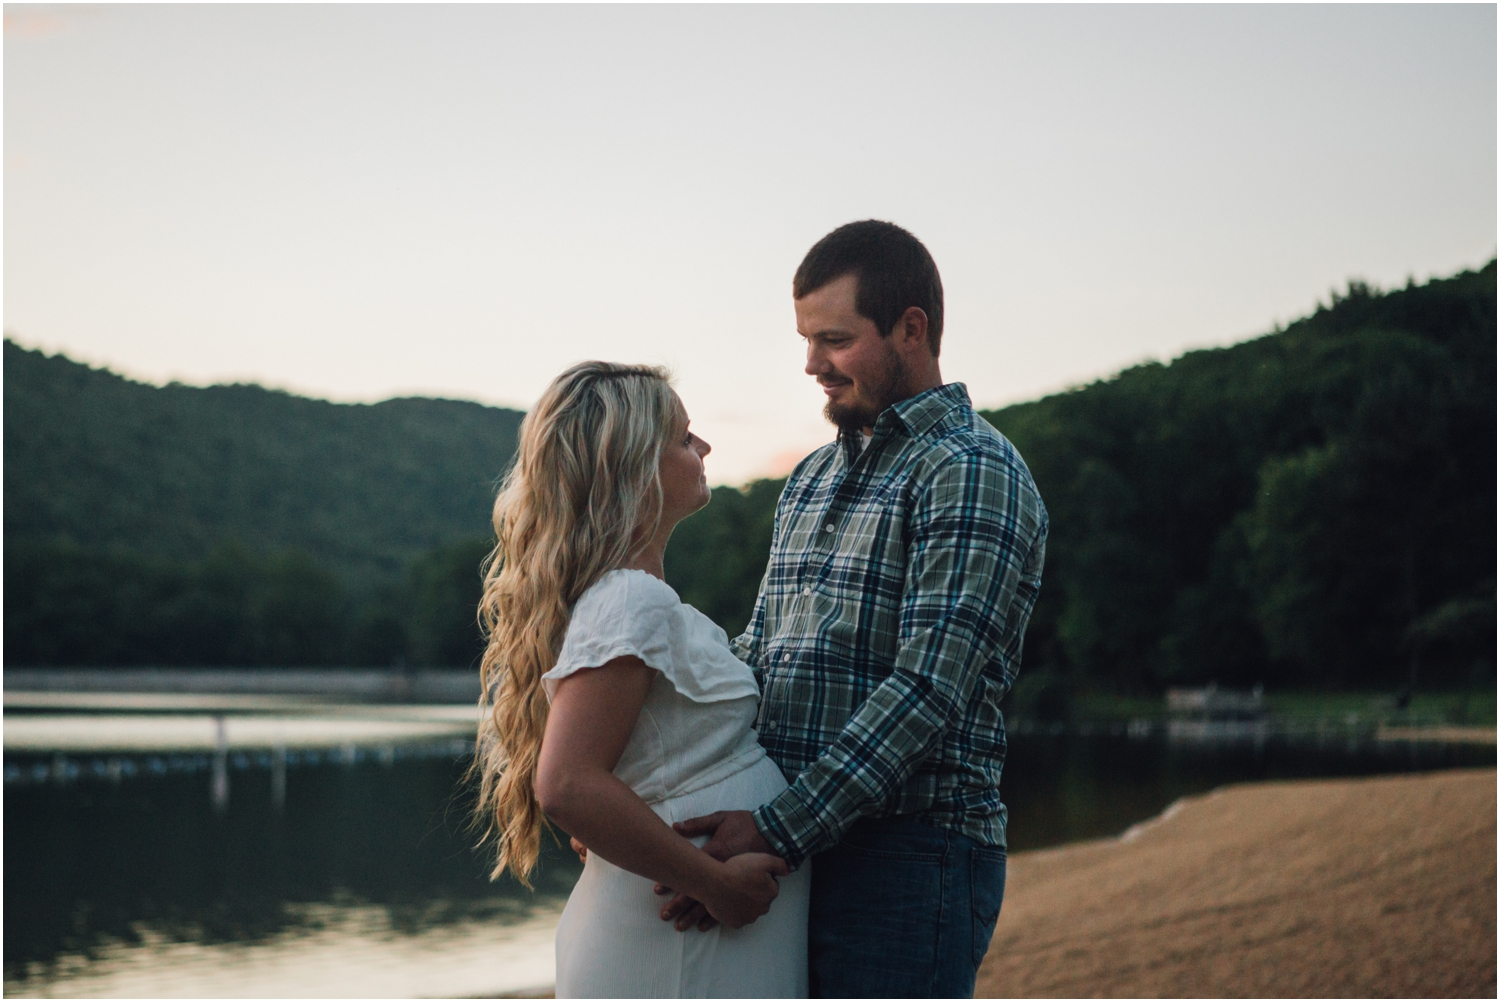 katy-sergent-photography-johnson-city-tennessee-northest-tn-elopement-intimate-wedding-photographer-outdoors-adventurous-couples-adventure-lovers_0021.jpg